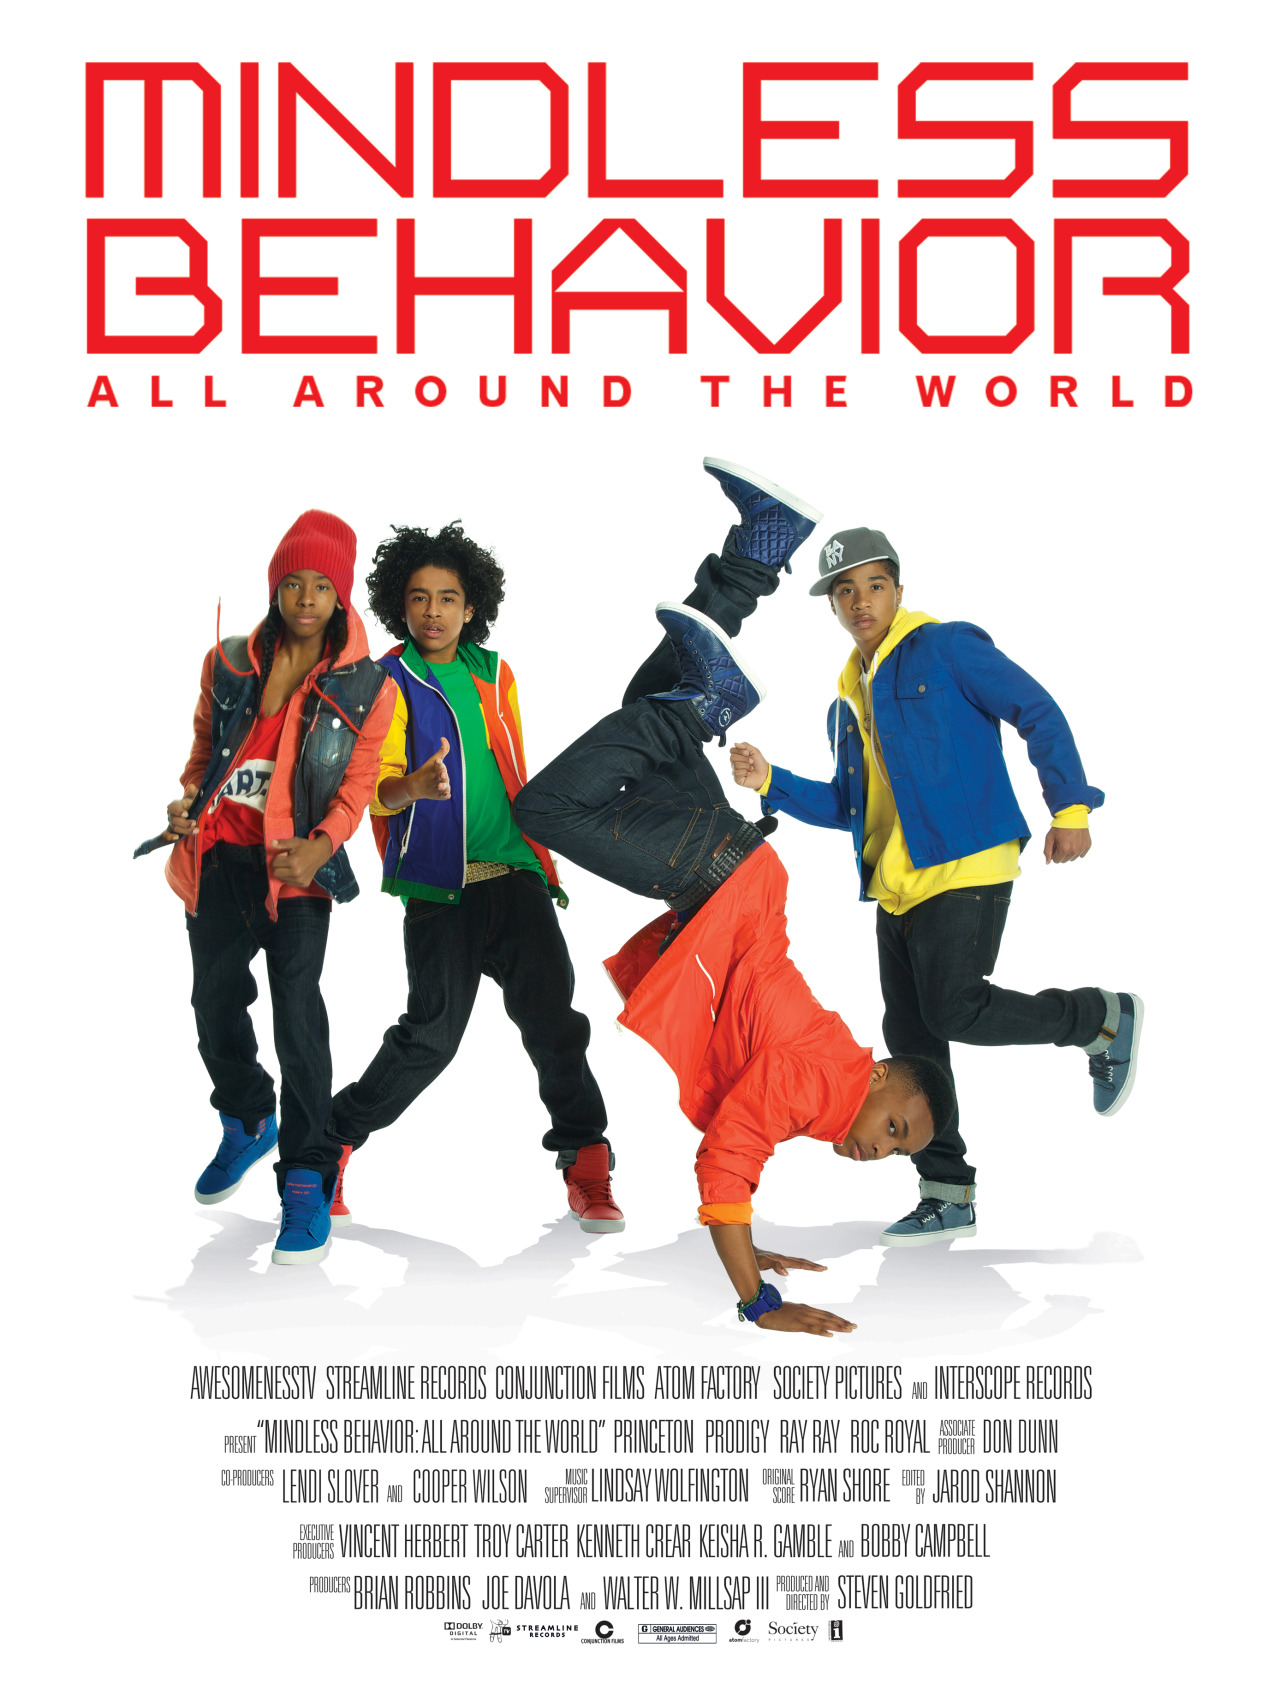 "mindlessbehavior:  Mindless Behavior: ""All Around The World"" documentary hits theaters March 15th!BUY TIX NOW: http://www.amctheatres.com/movies/mindless-behavior-all-around-the-worldvv"